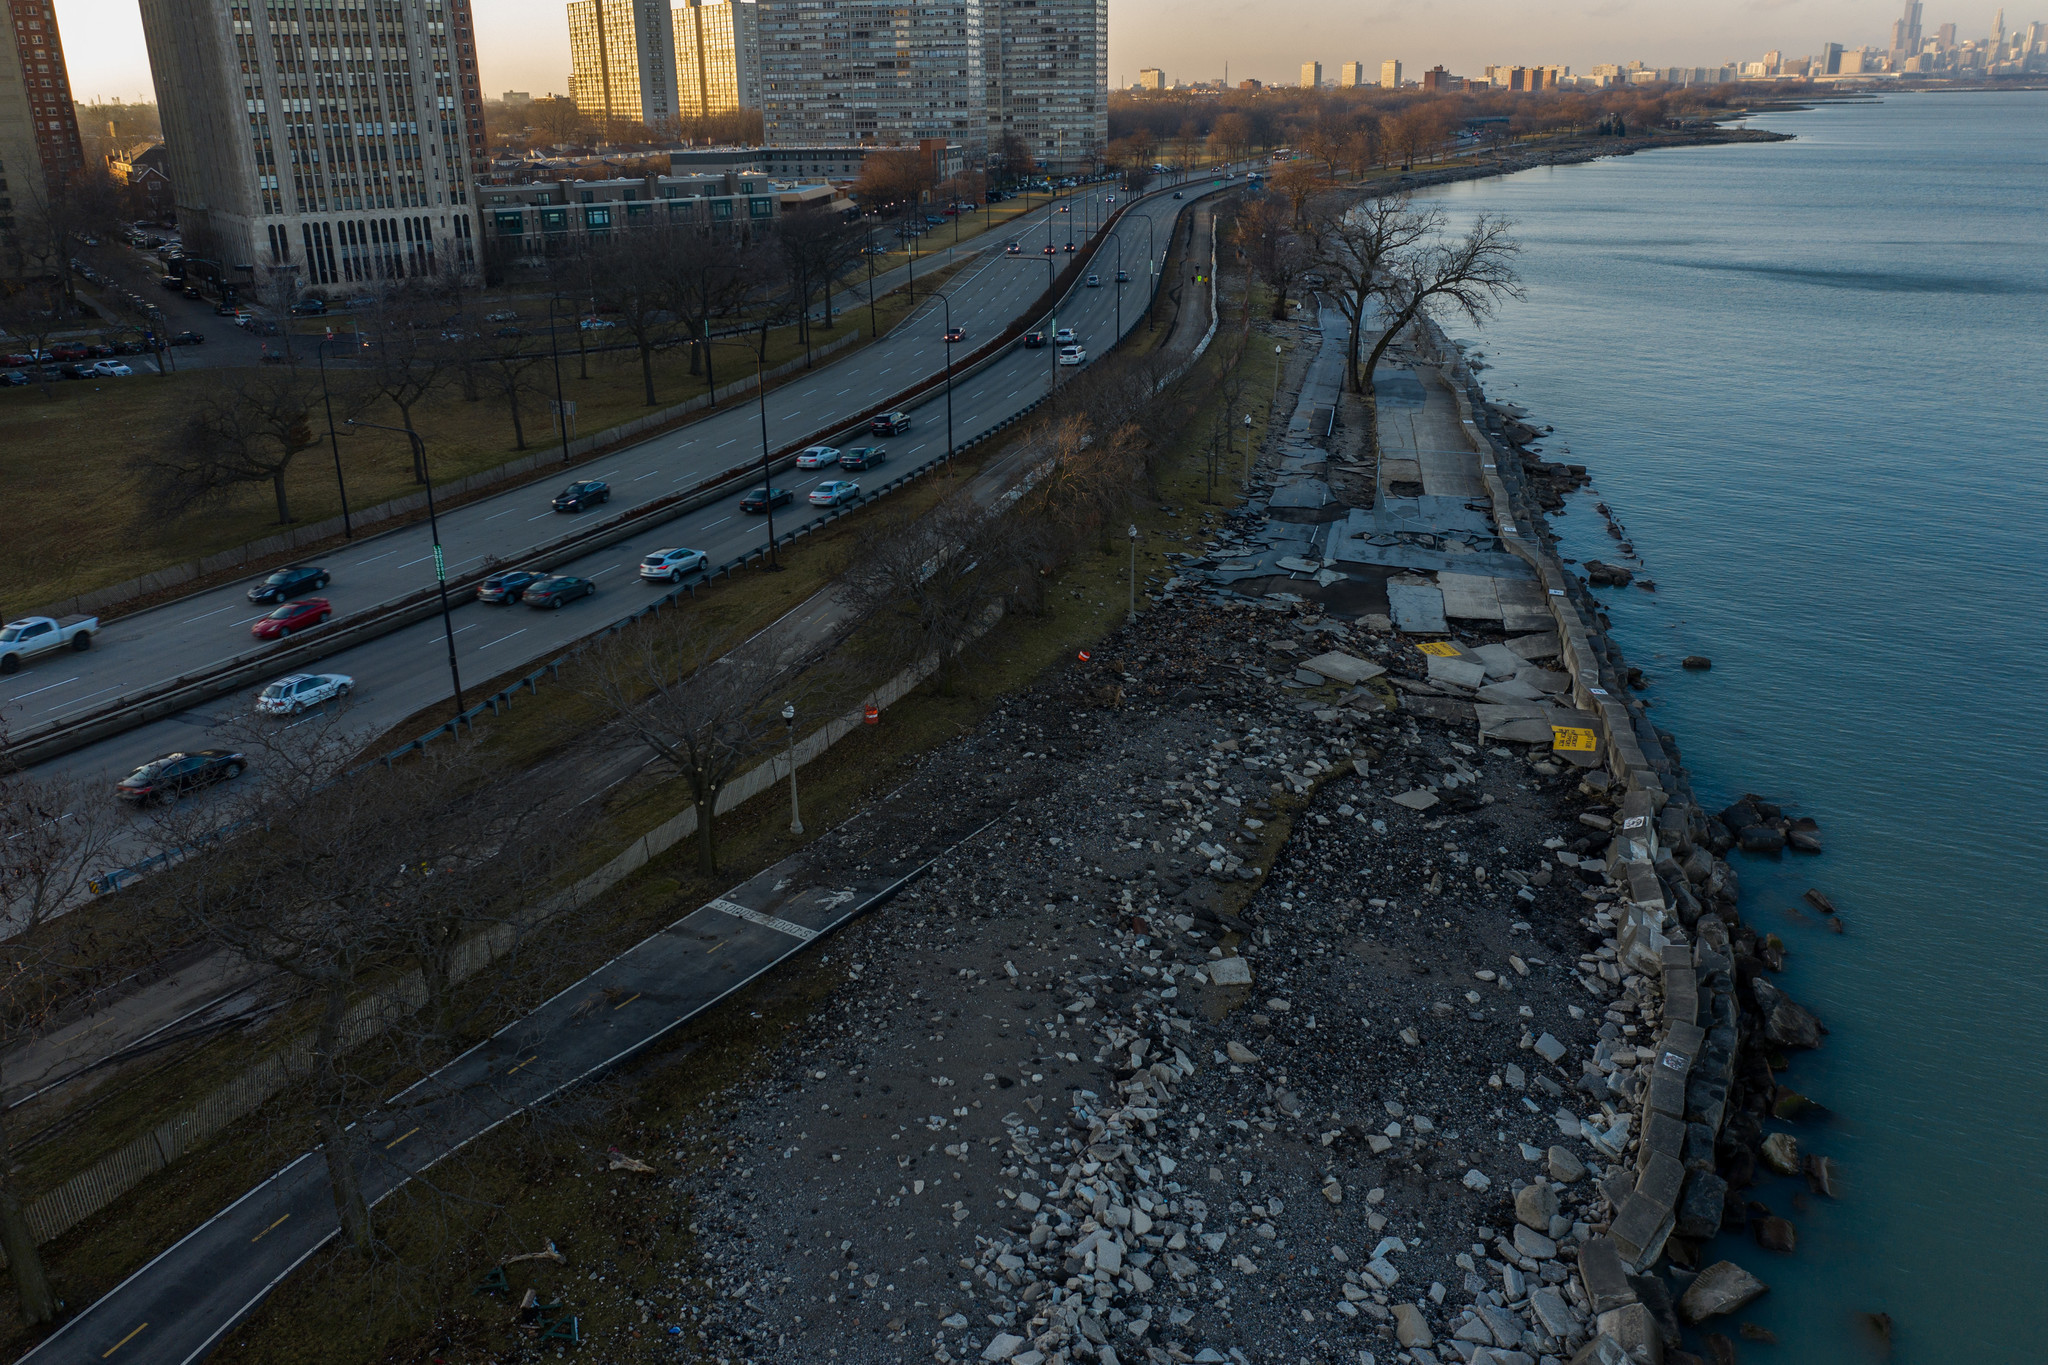 How bitter cold winter blasts and a warming planet will chew up the Lake Michigan shoreline, faster and faster